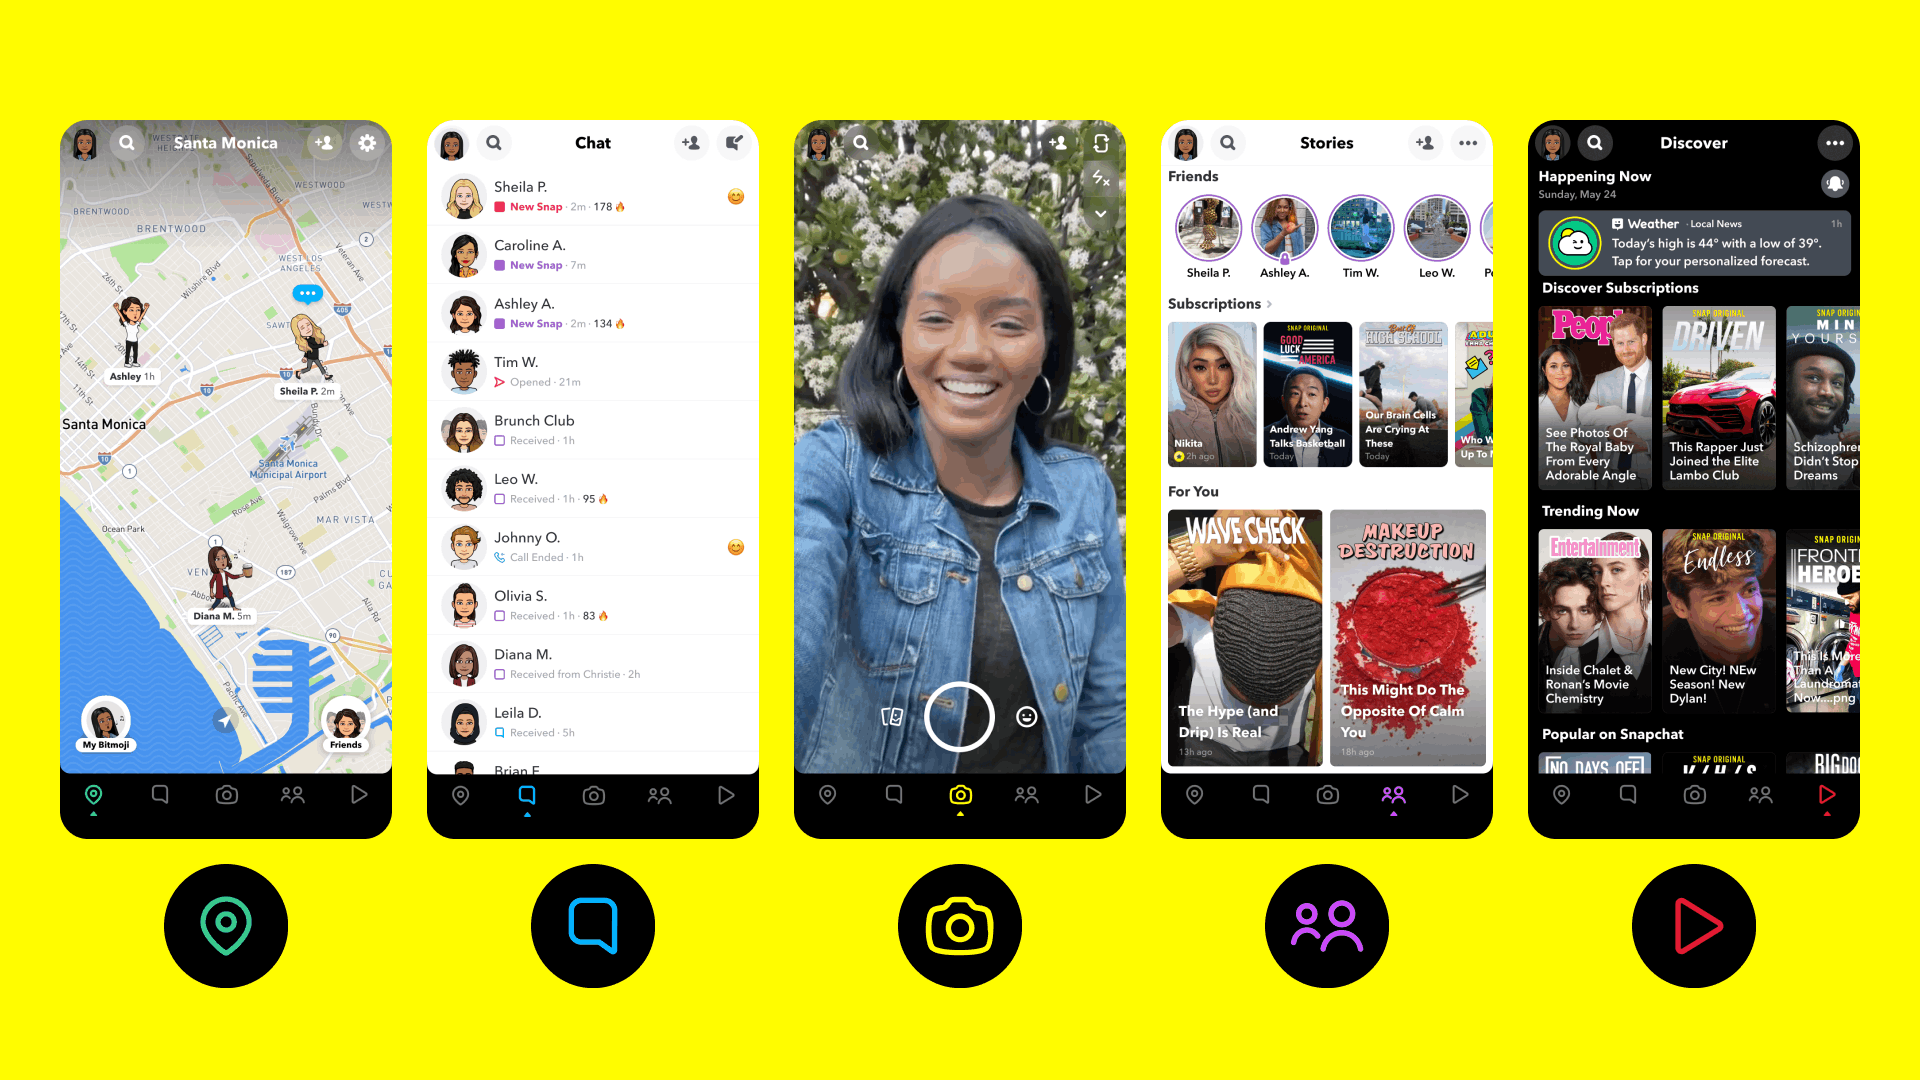 Learn How Snapchat Works and How to Get New Filters